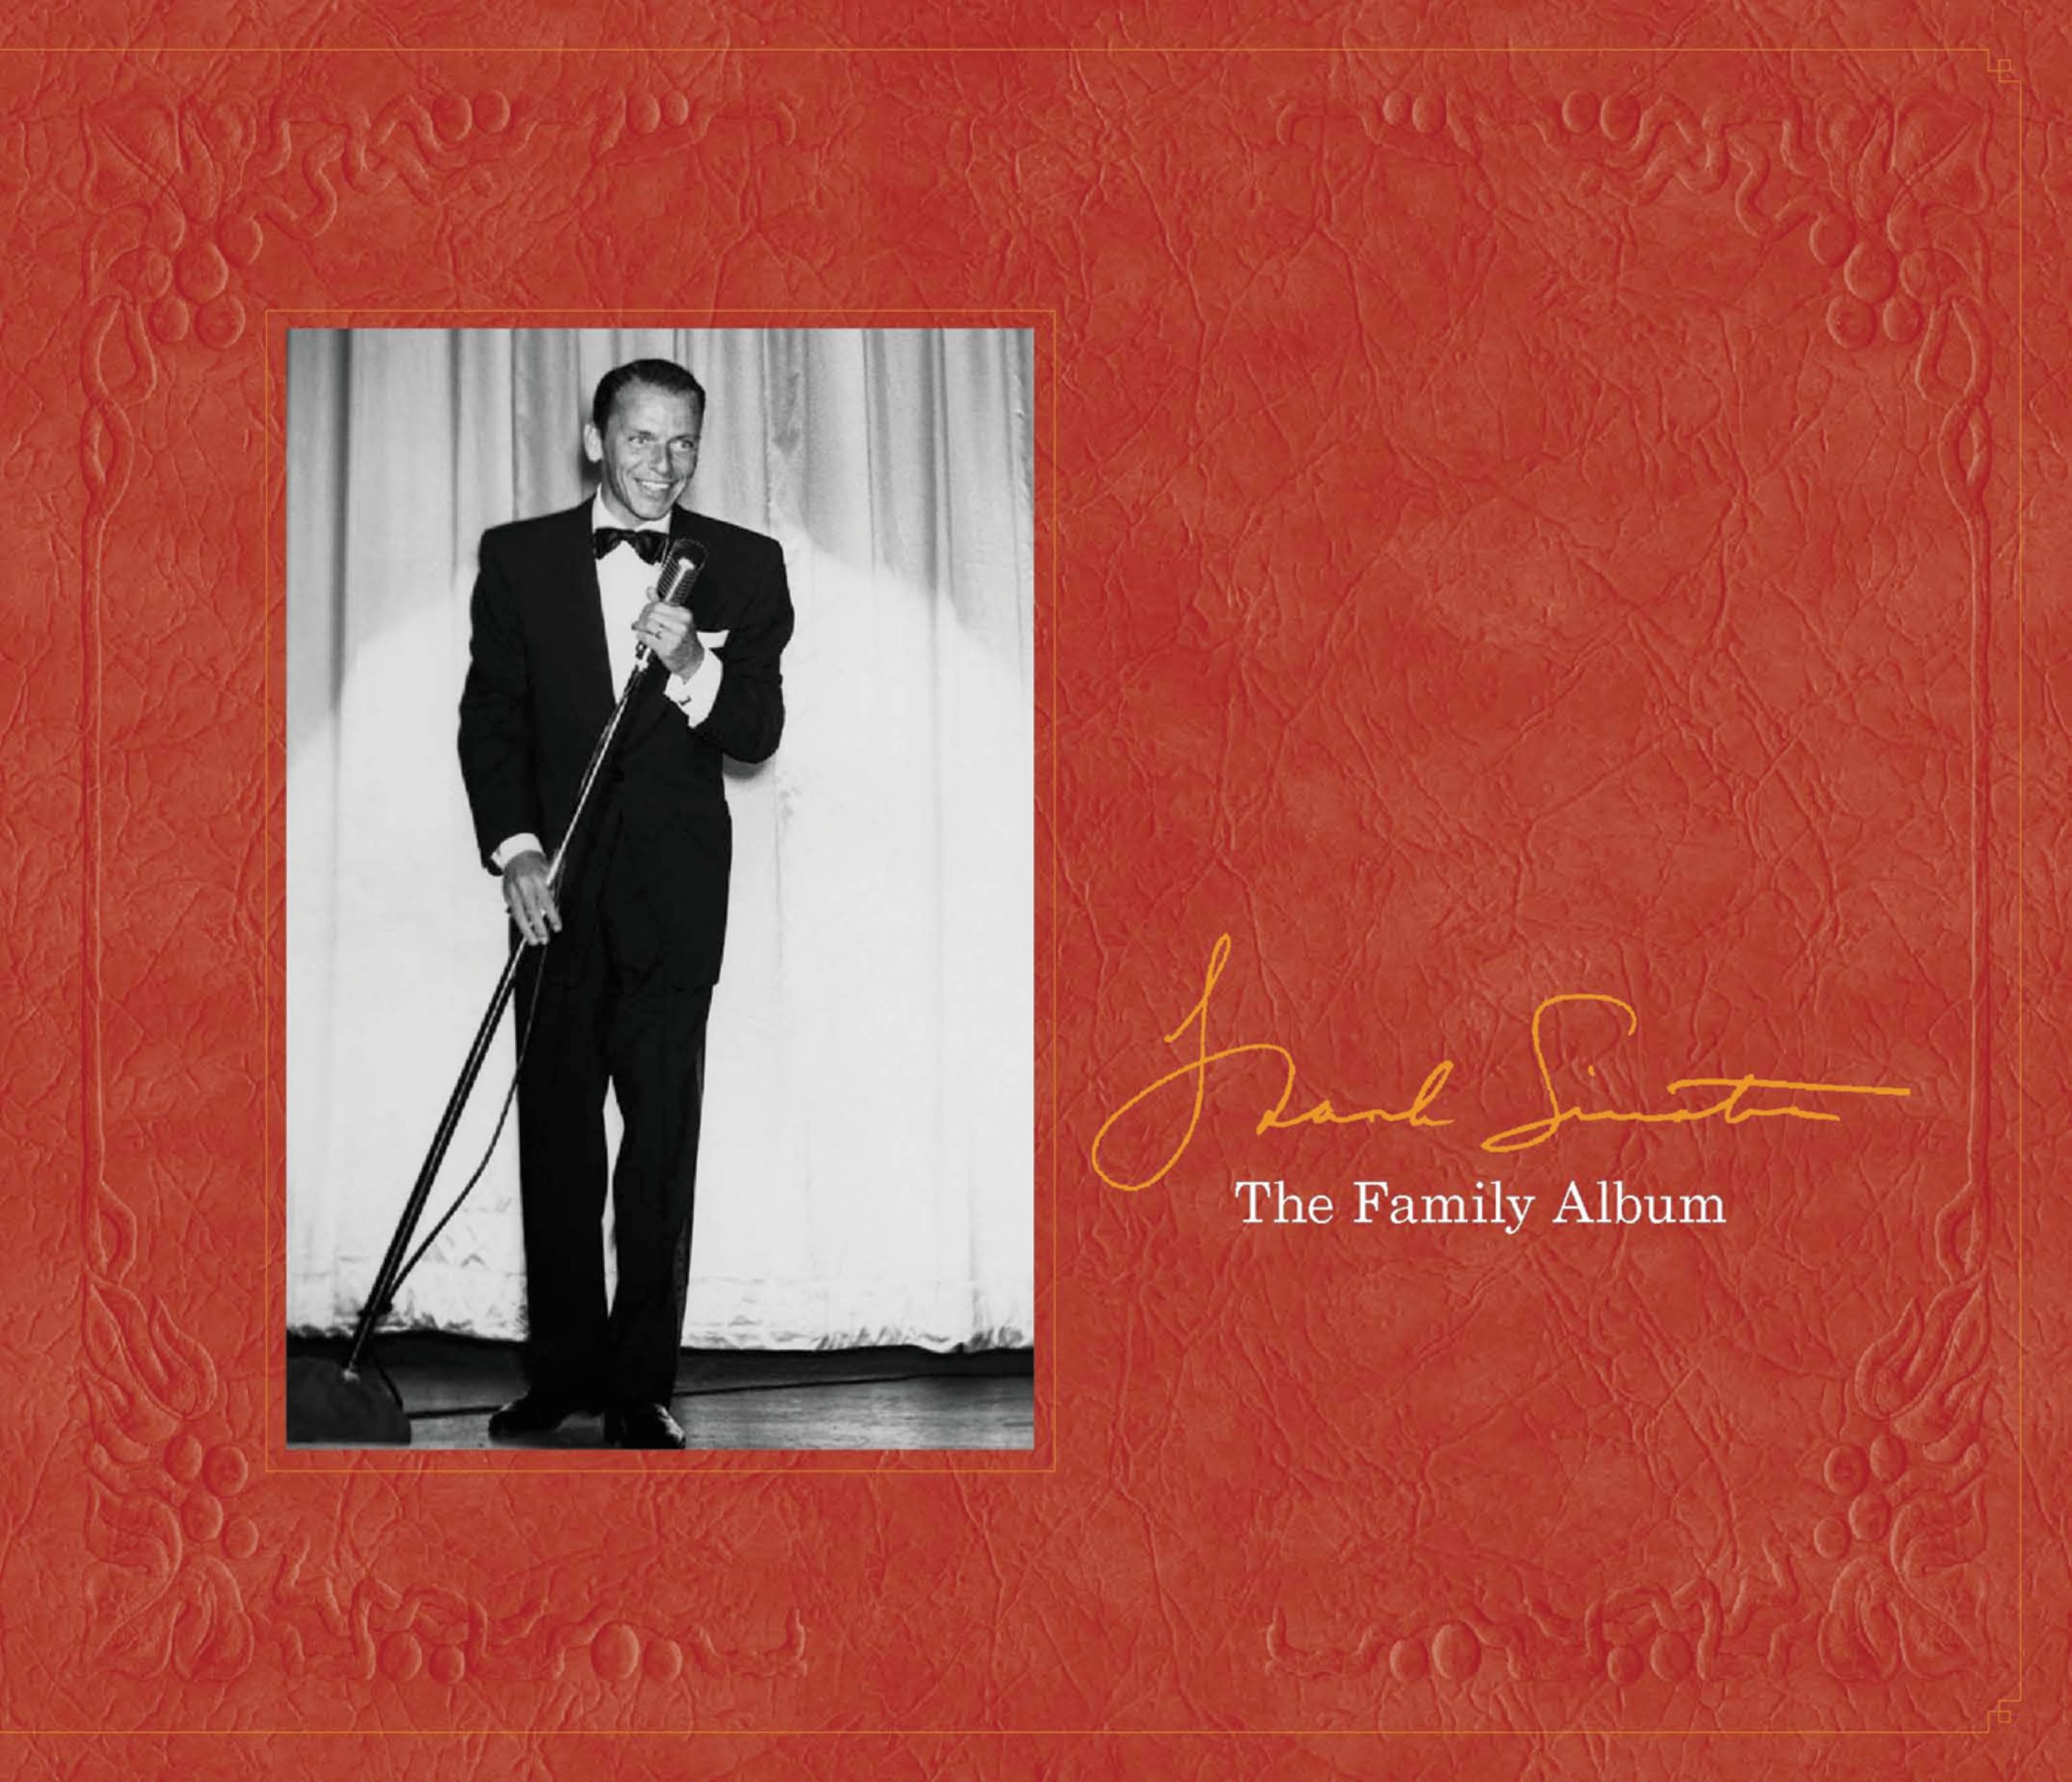 Frank Sinatra: The Family Album